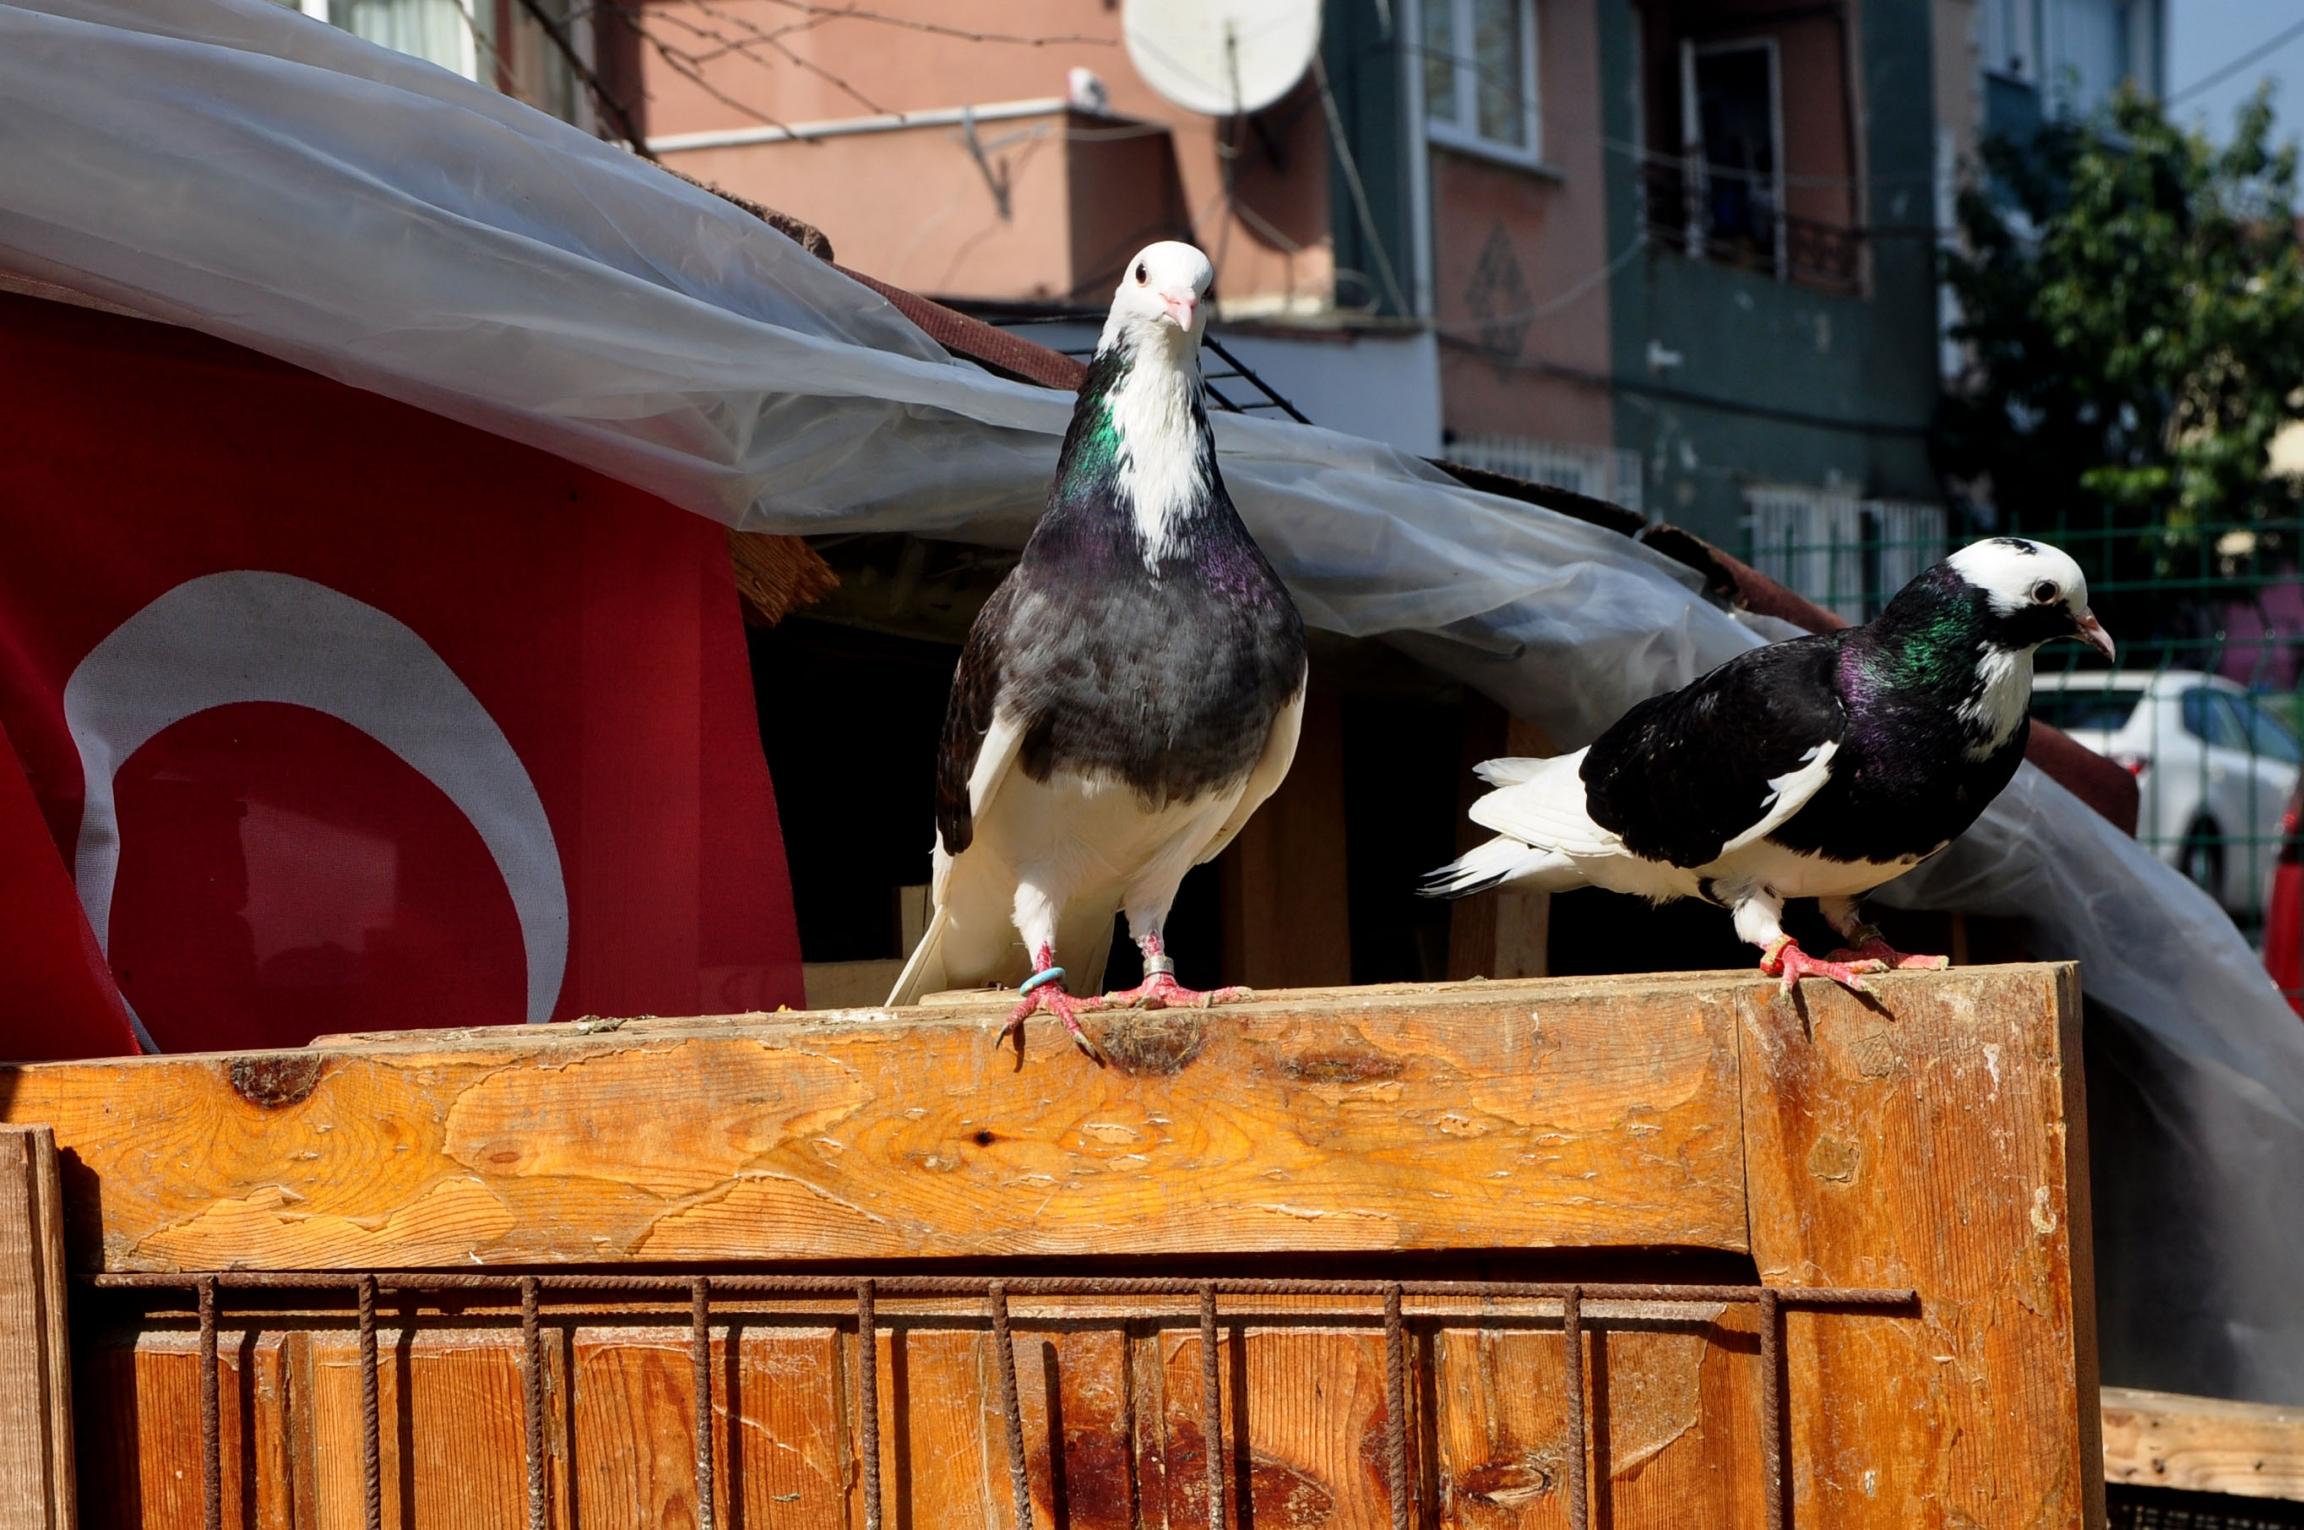 After lunch, a pair of Yalcın Karcı's pigeons sit and observe the visitors.